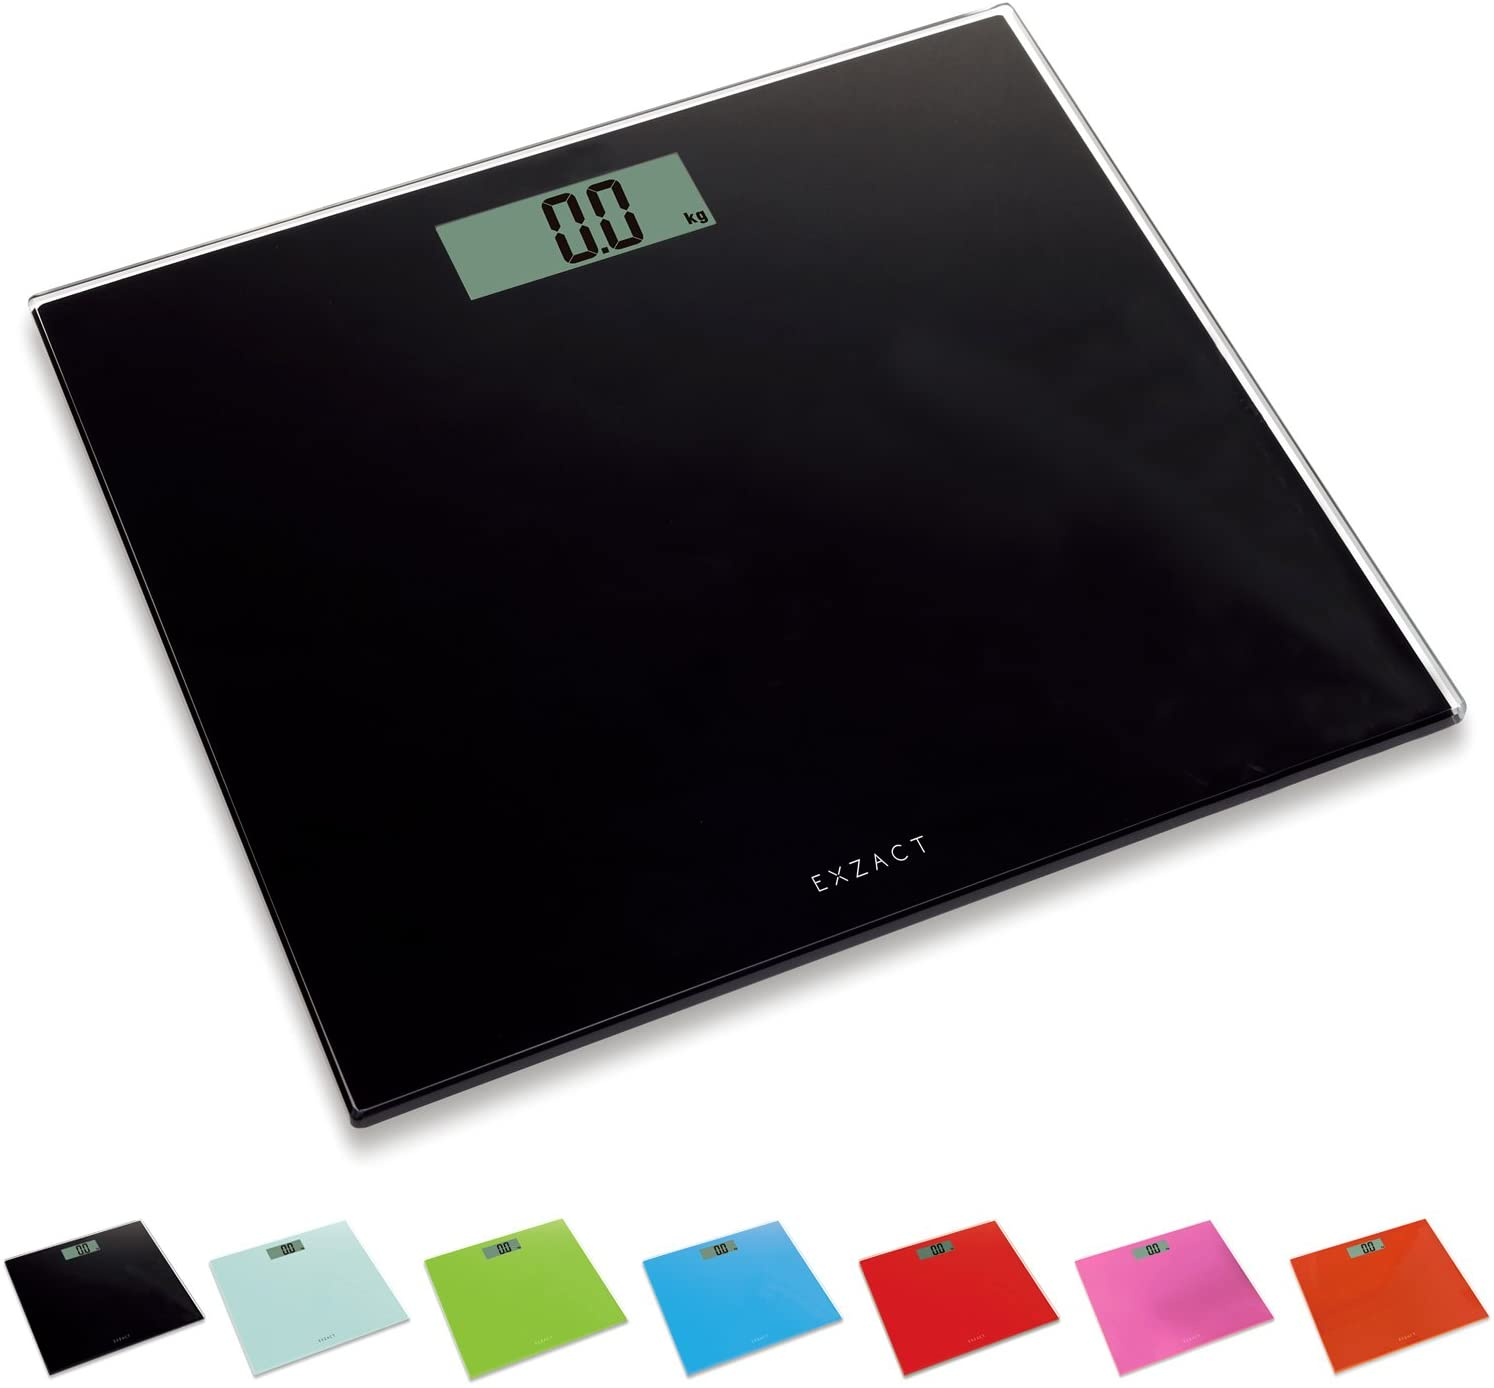 Electronic Digital Bathroom Scale, Digital Glass Weighing Scale Body Weight with Step-On Technology Black